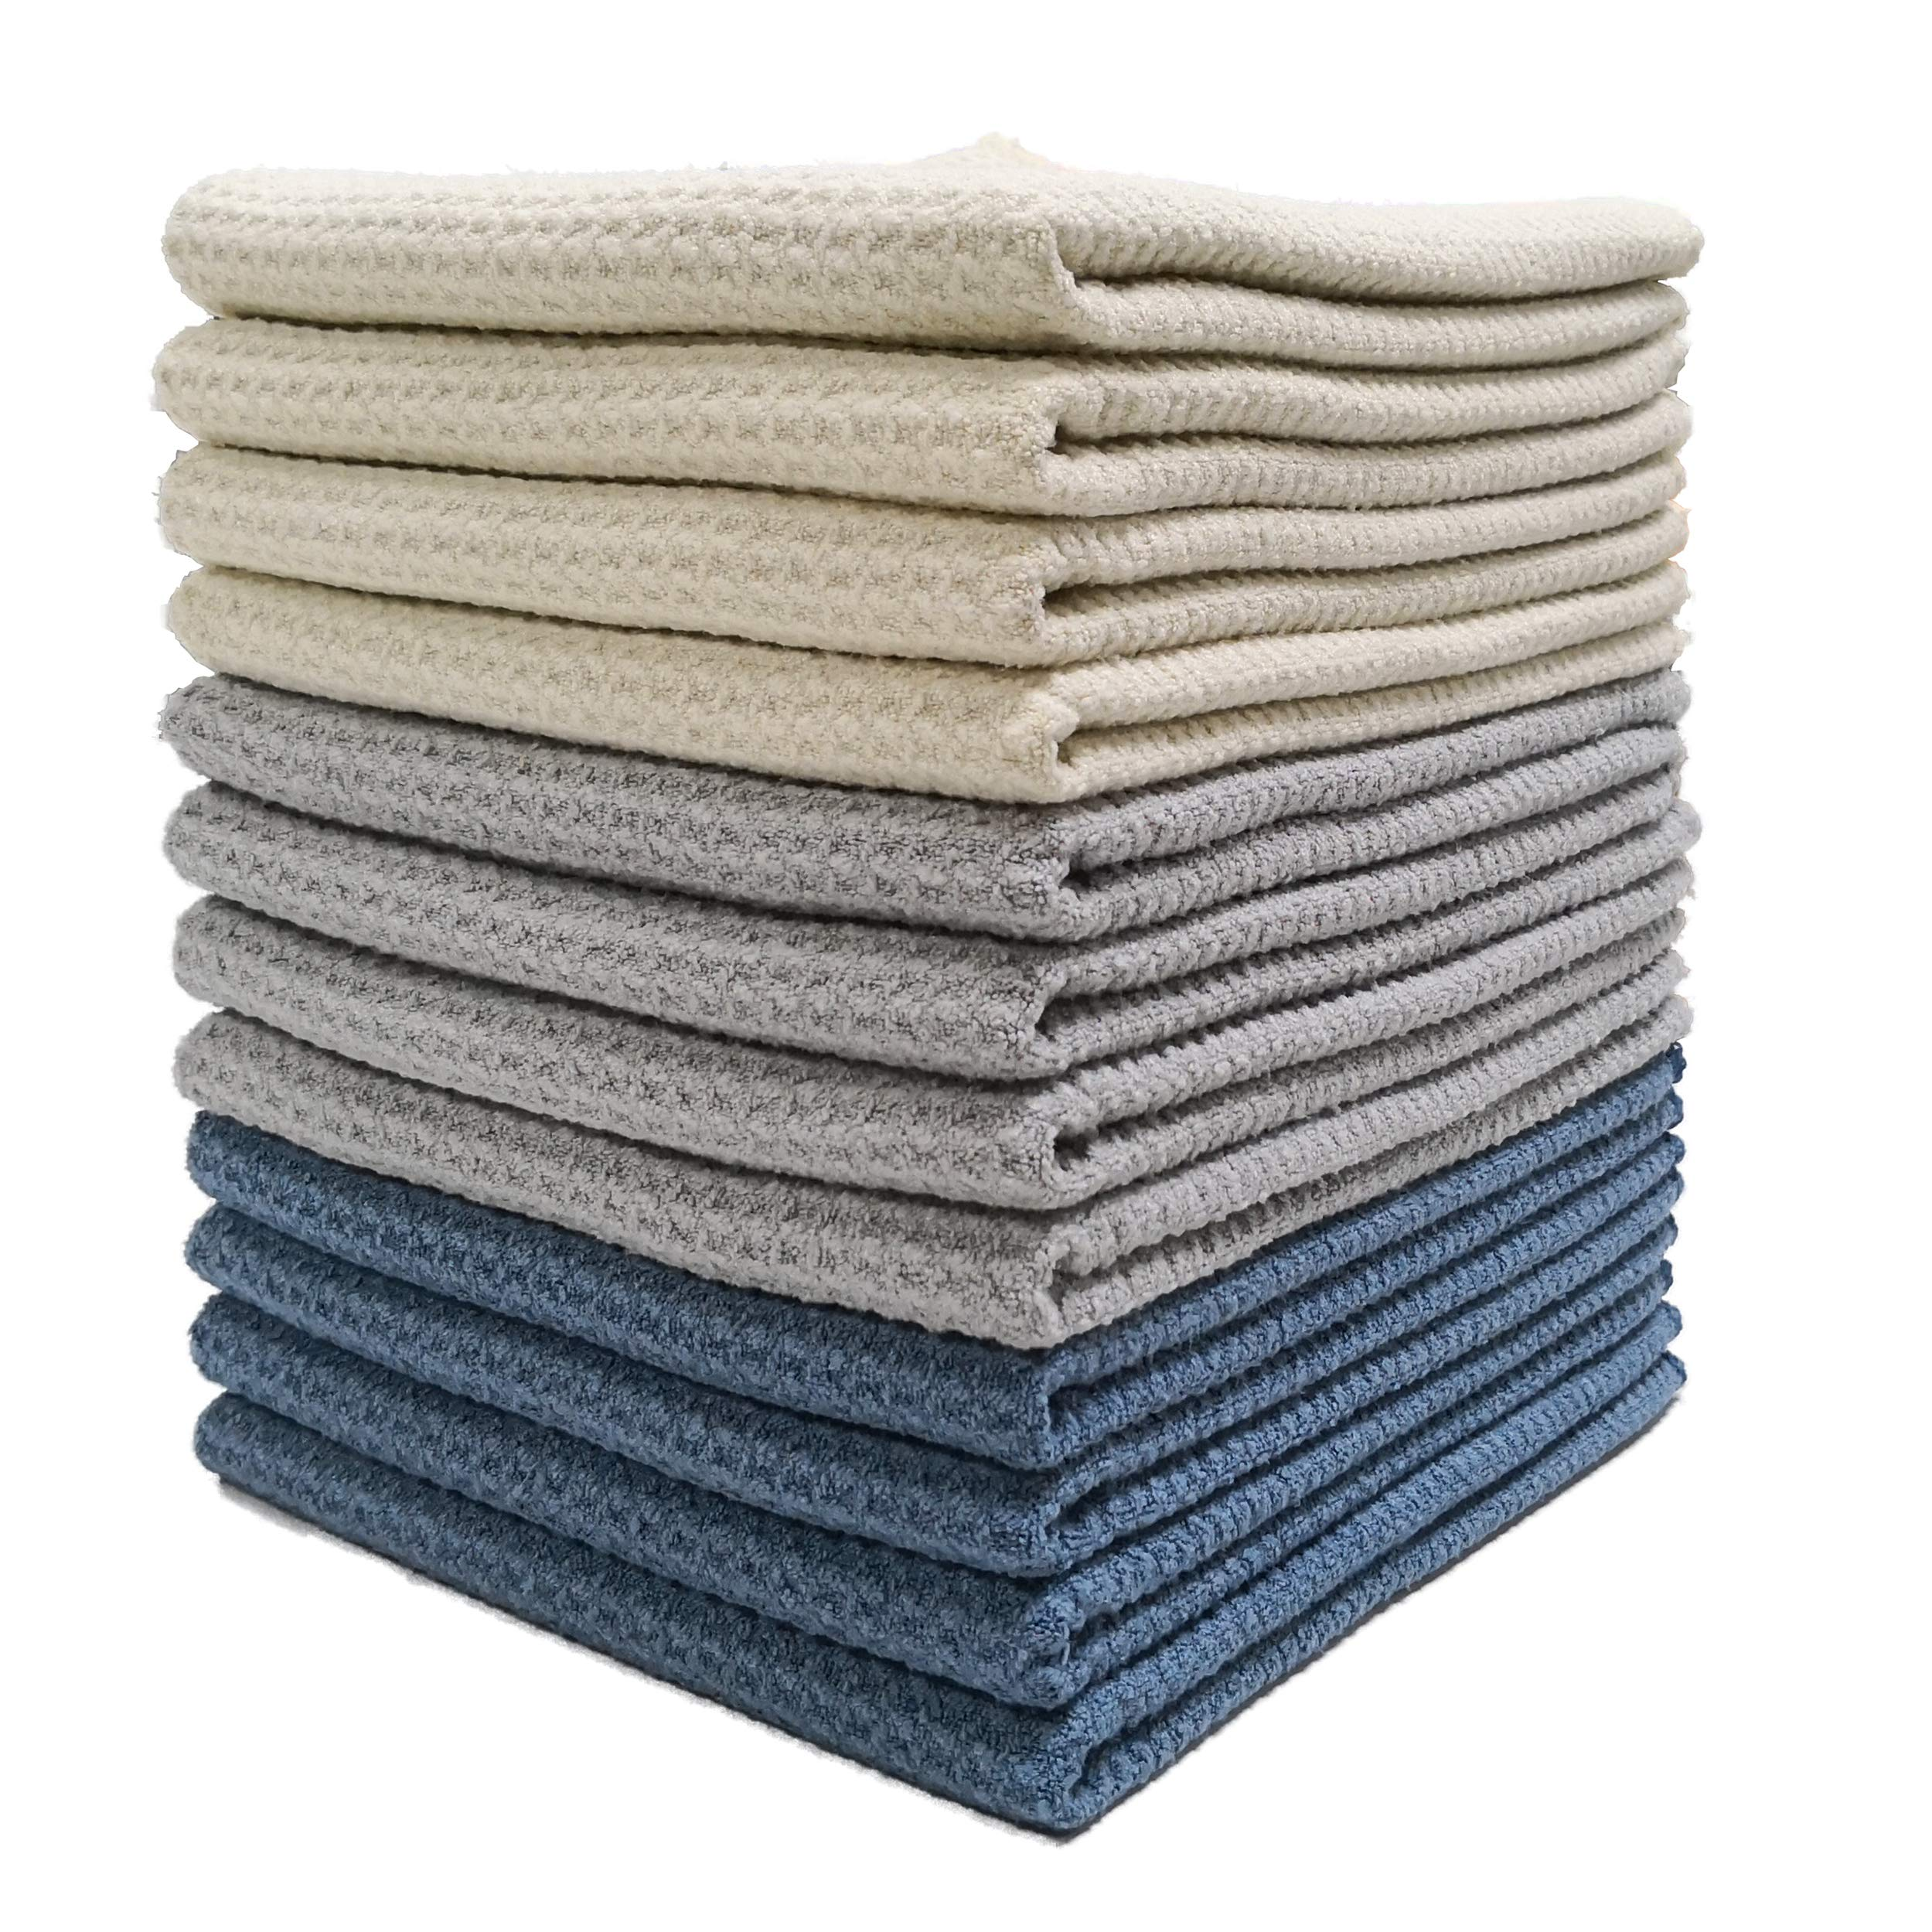 Polyte Premium Microfiber Kitchen Dish Hand Towel Waffle Weave (Dark Blue, Gray, Off White, 16x28) 12 Pack by Polyte